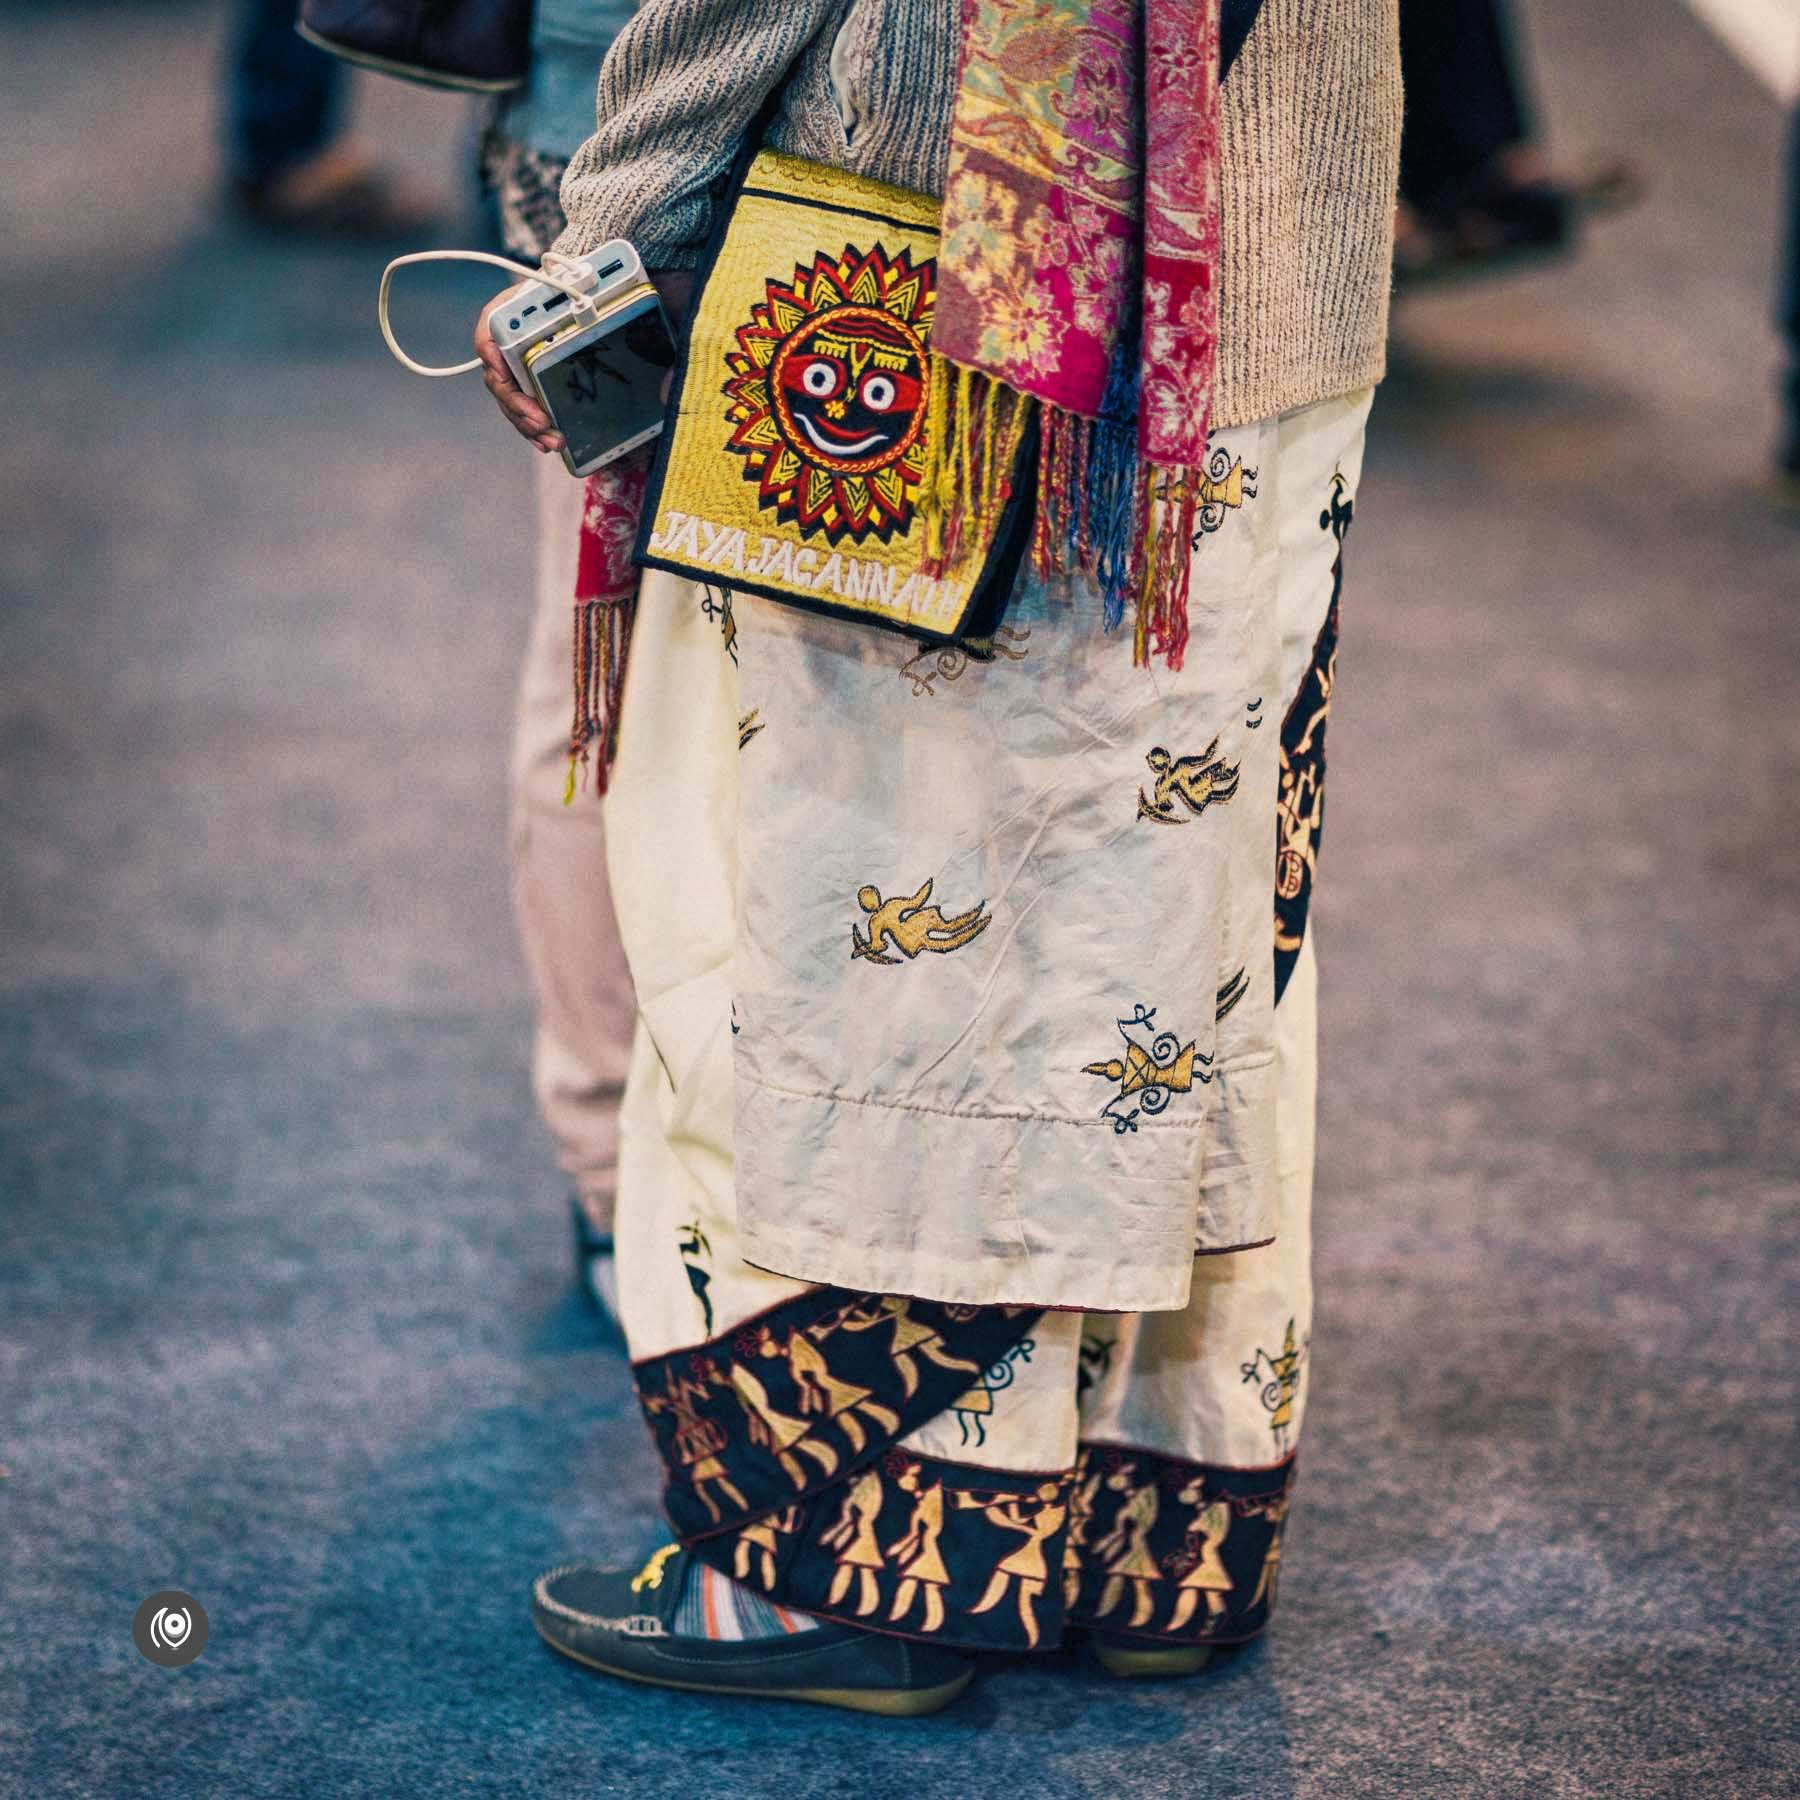 India Art Fair 2018, February, Naina Redhu, Naina.co, EyesForStreetStyle, Street Style, EyesFor, Eyes For Street Style, People Watching, Art In India, Style, Art